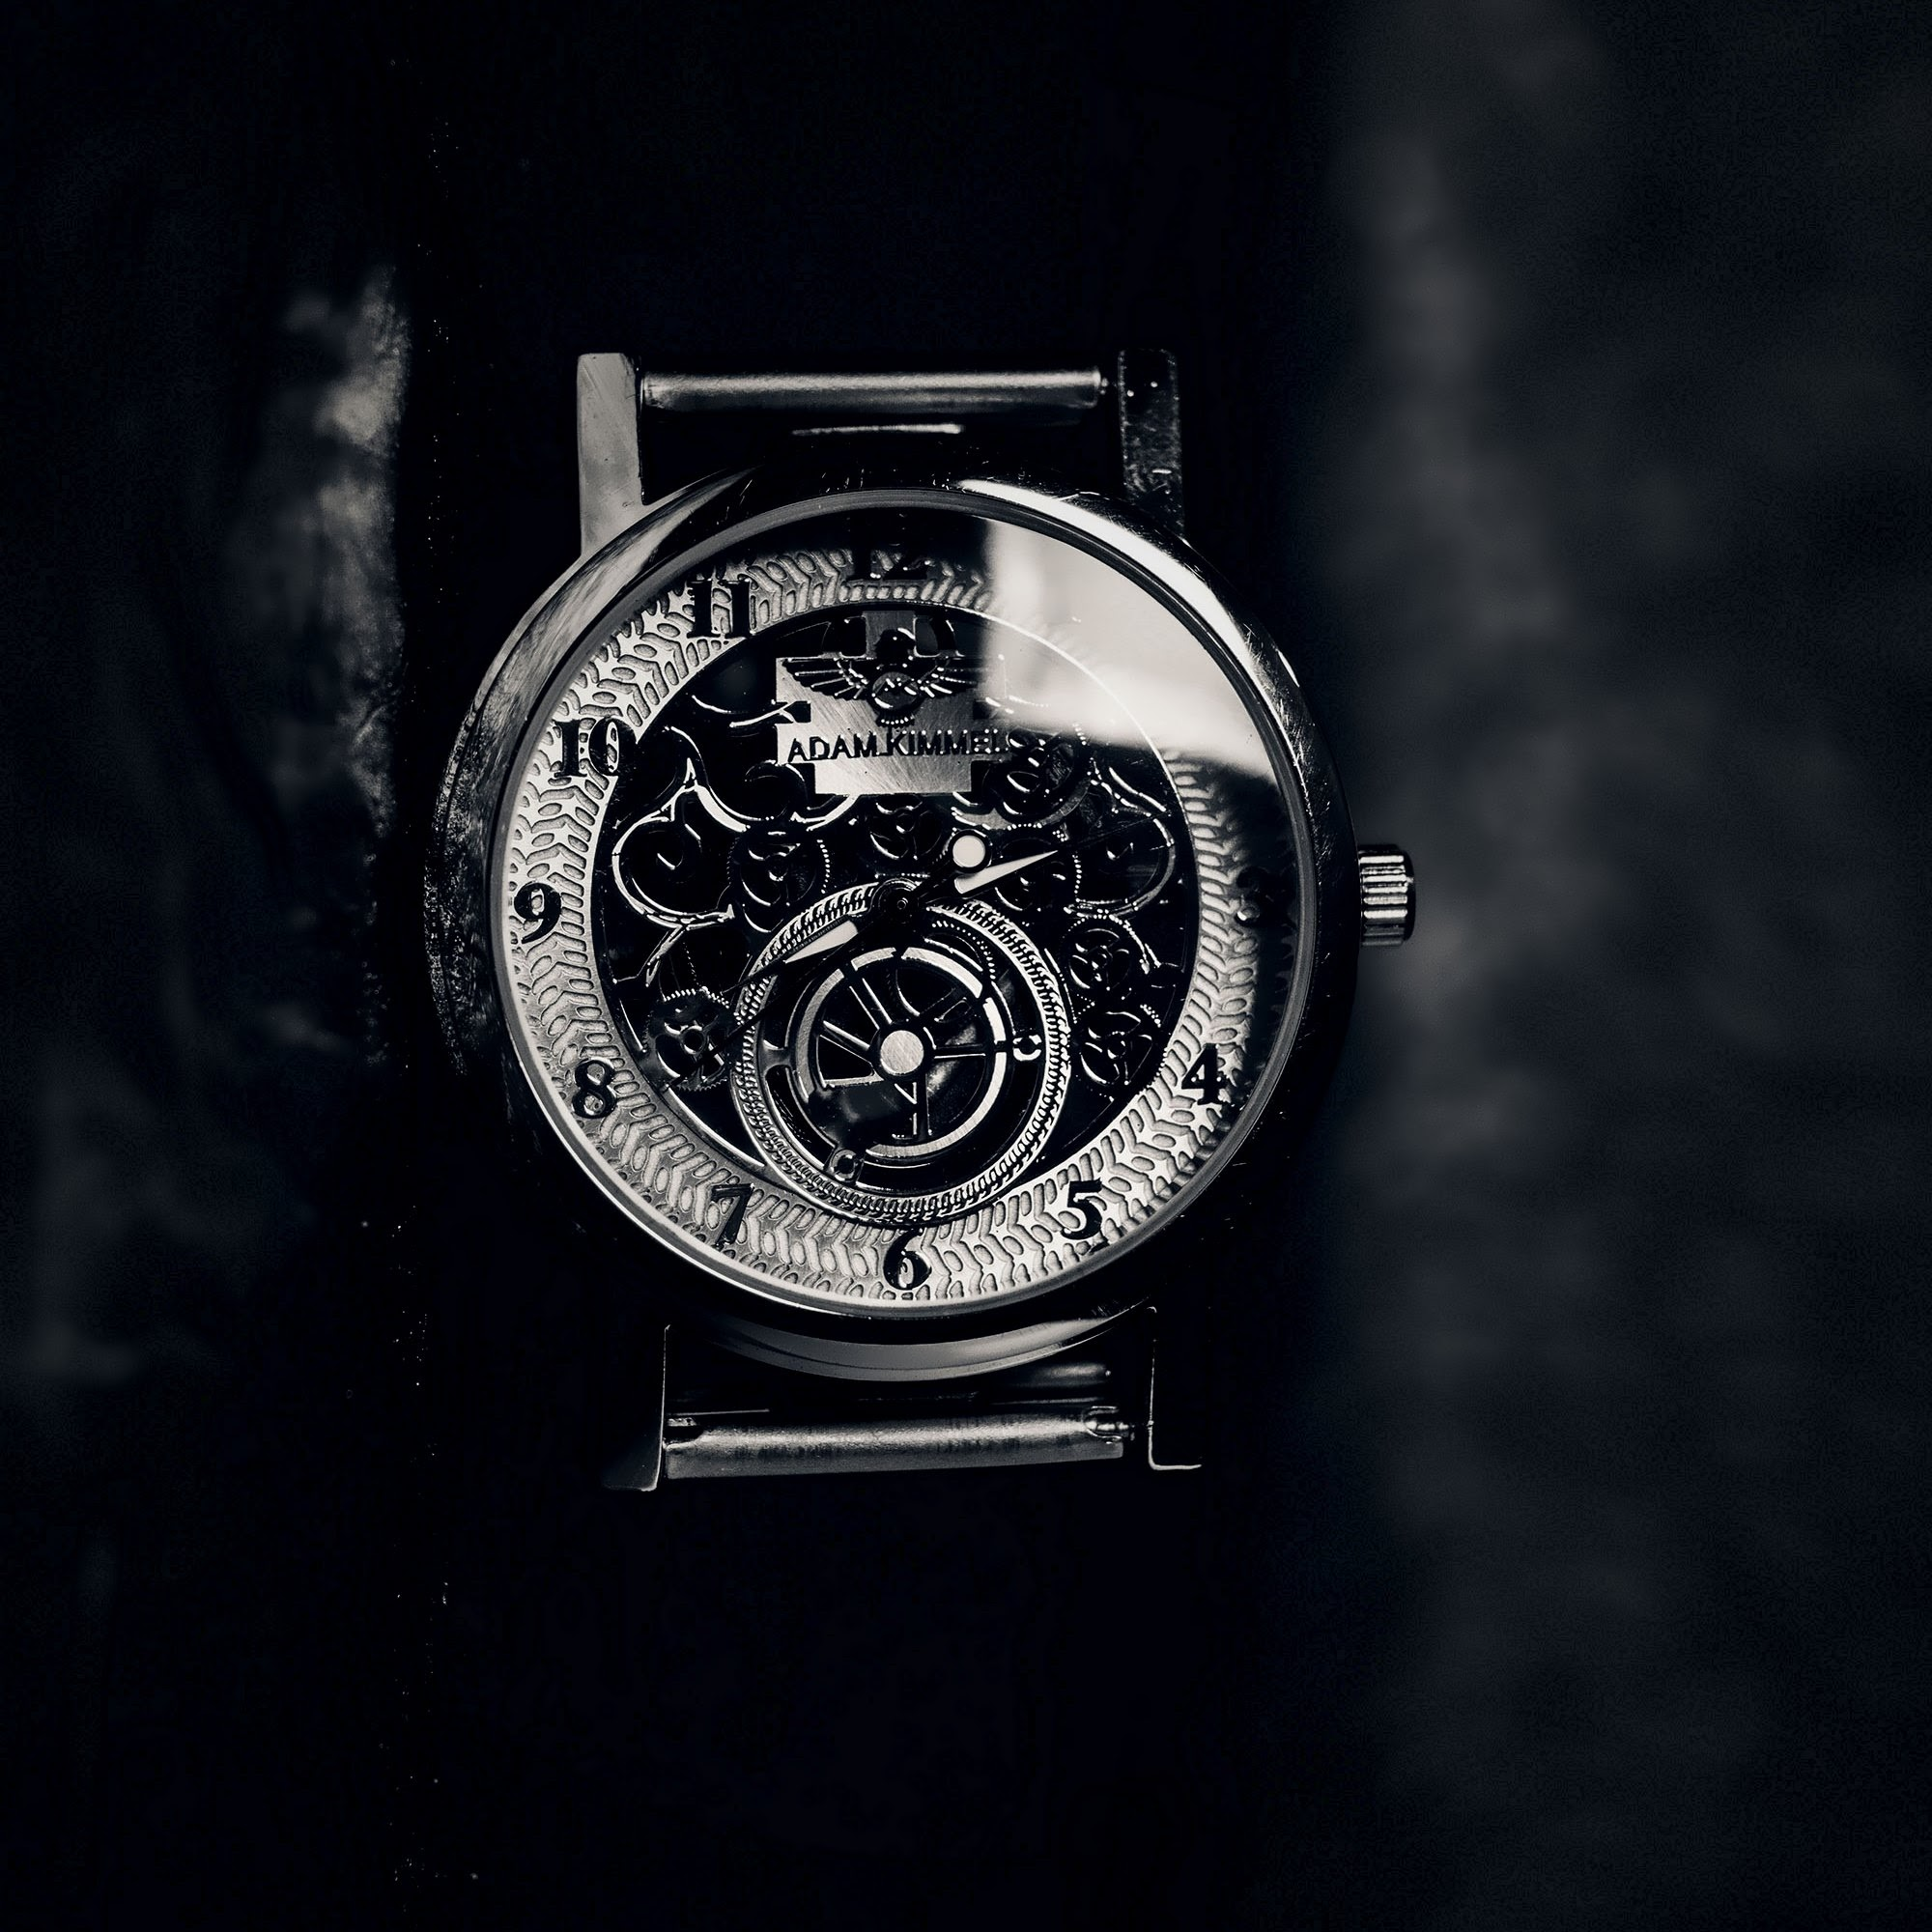 Luxury watches wallpaper - Hd Wallpaper Luxury Watch Premium Hand Watch In This Free Photography